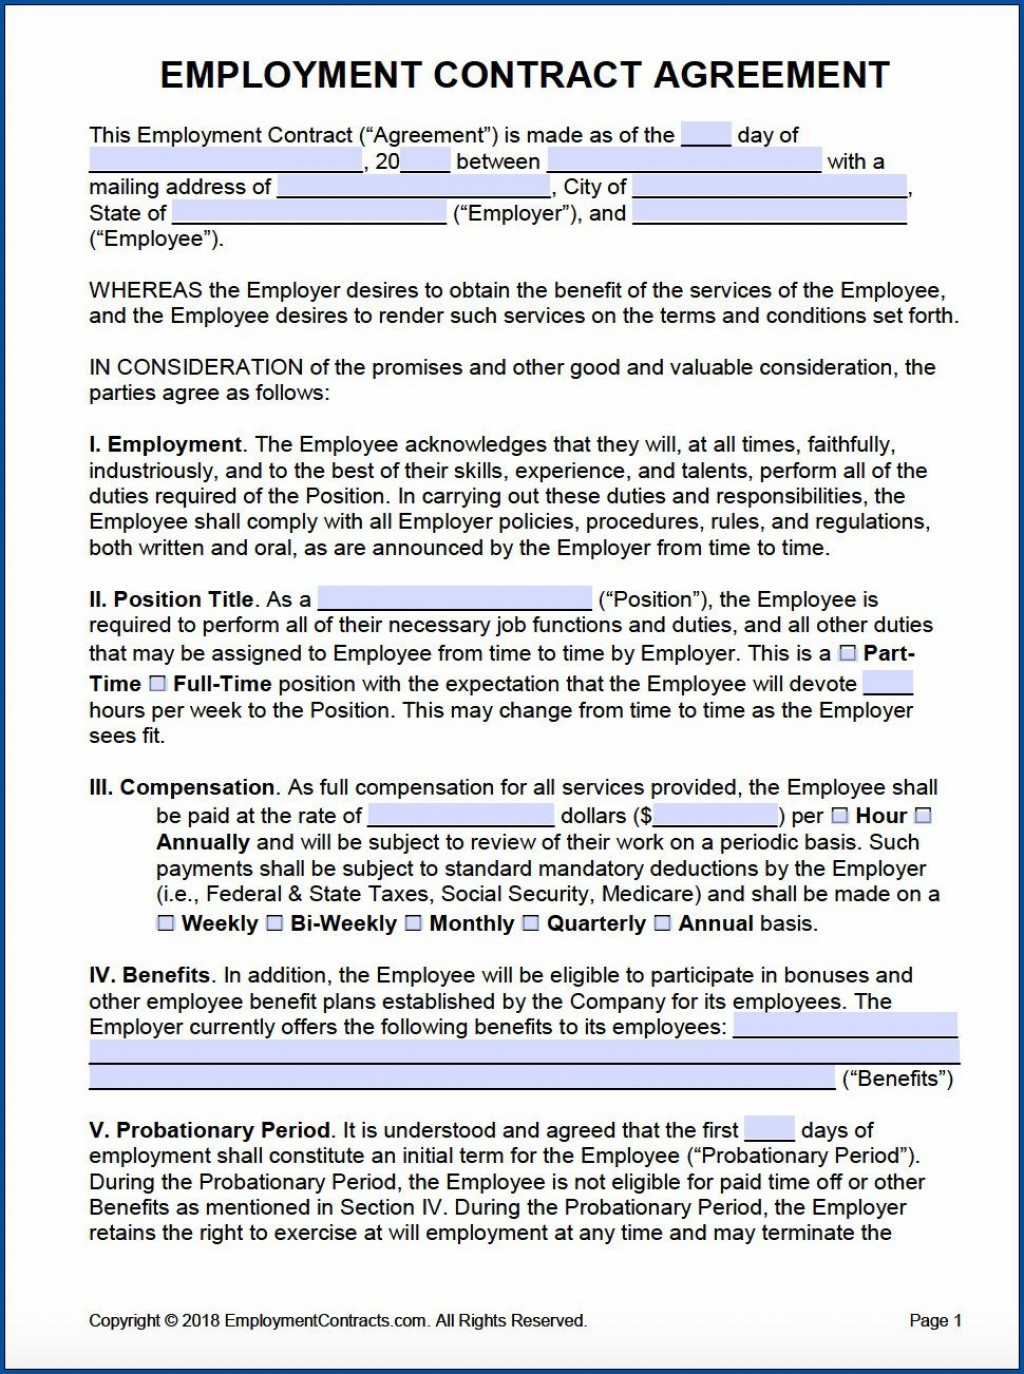 009 Breathtaking Free Employment Contract Template Sample  Templates Bc Temporary South Africa IrelandLarge